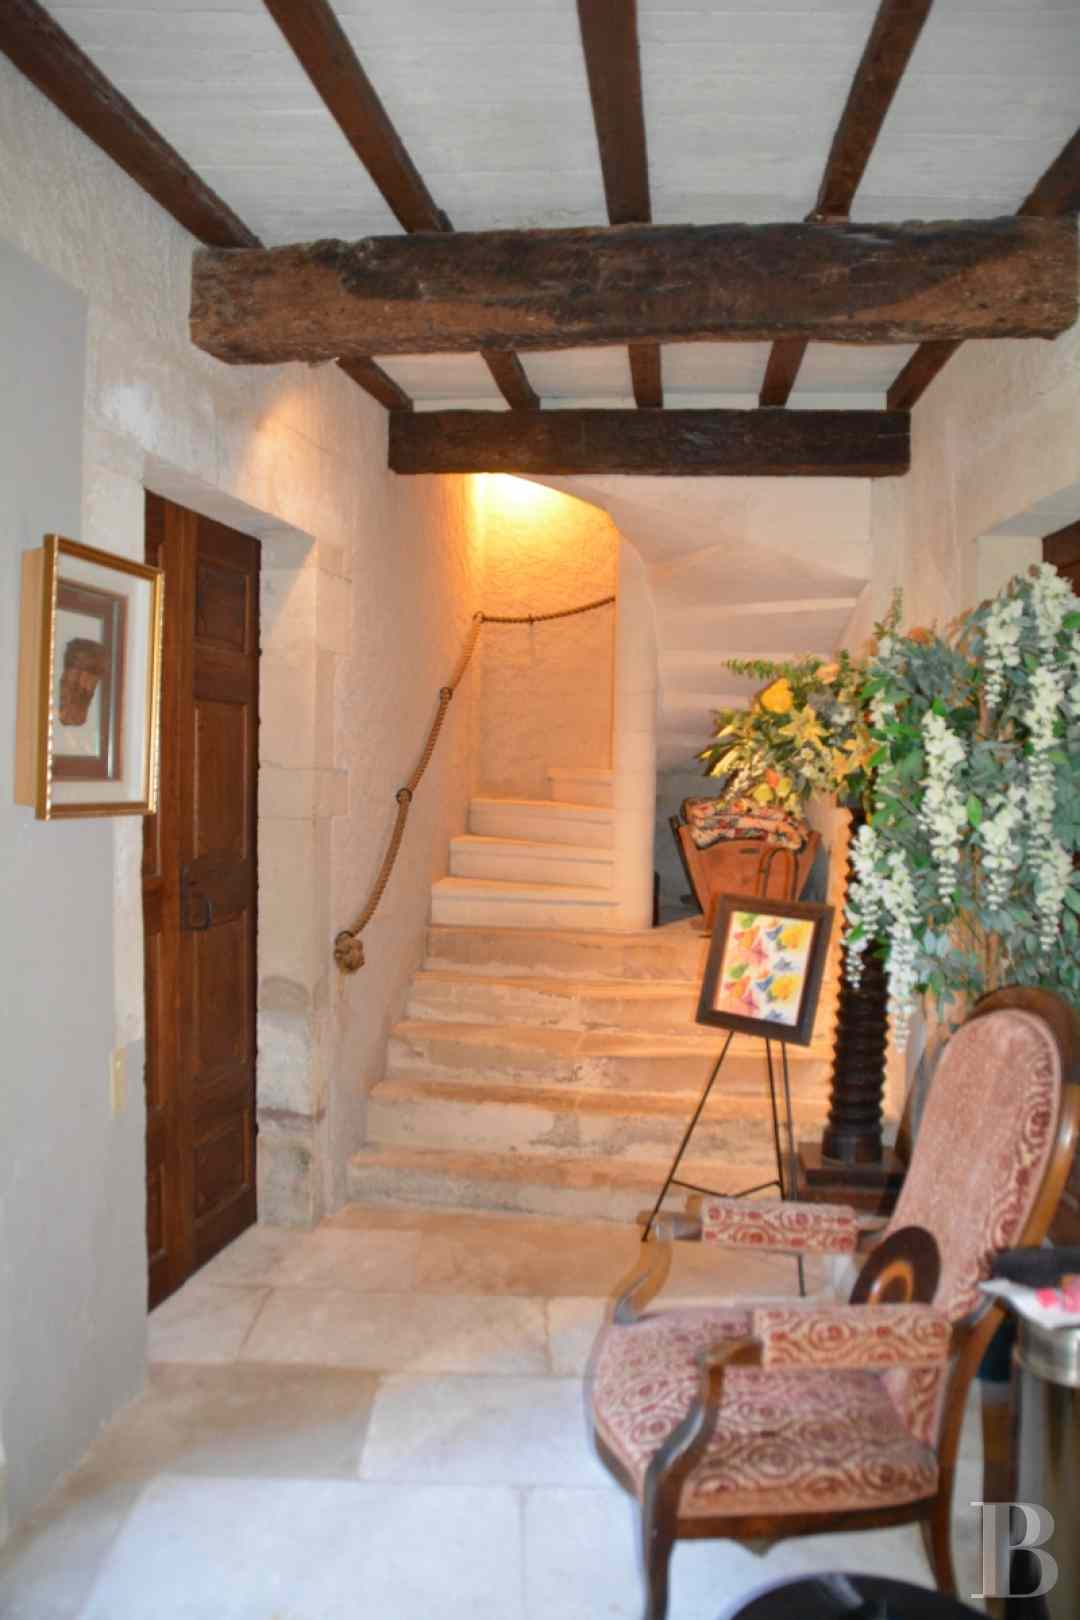 mansion houses for sale France provence cote dazur mansion houses - 11 zoom